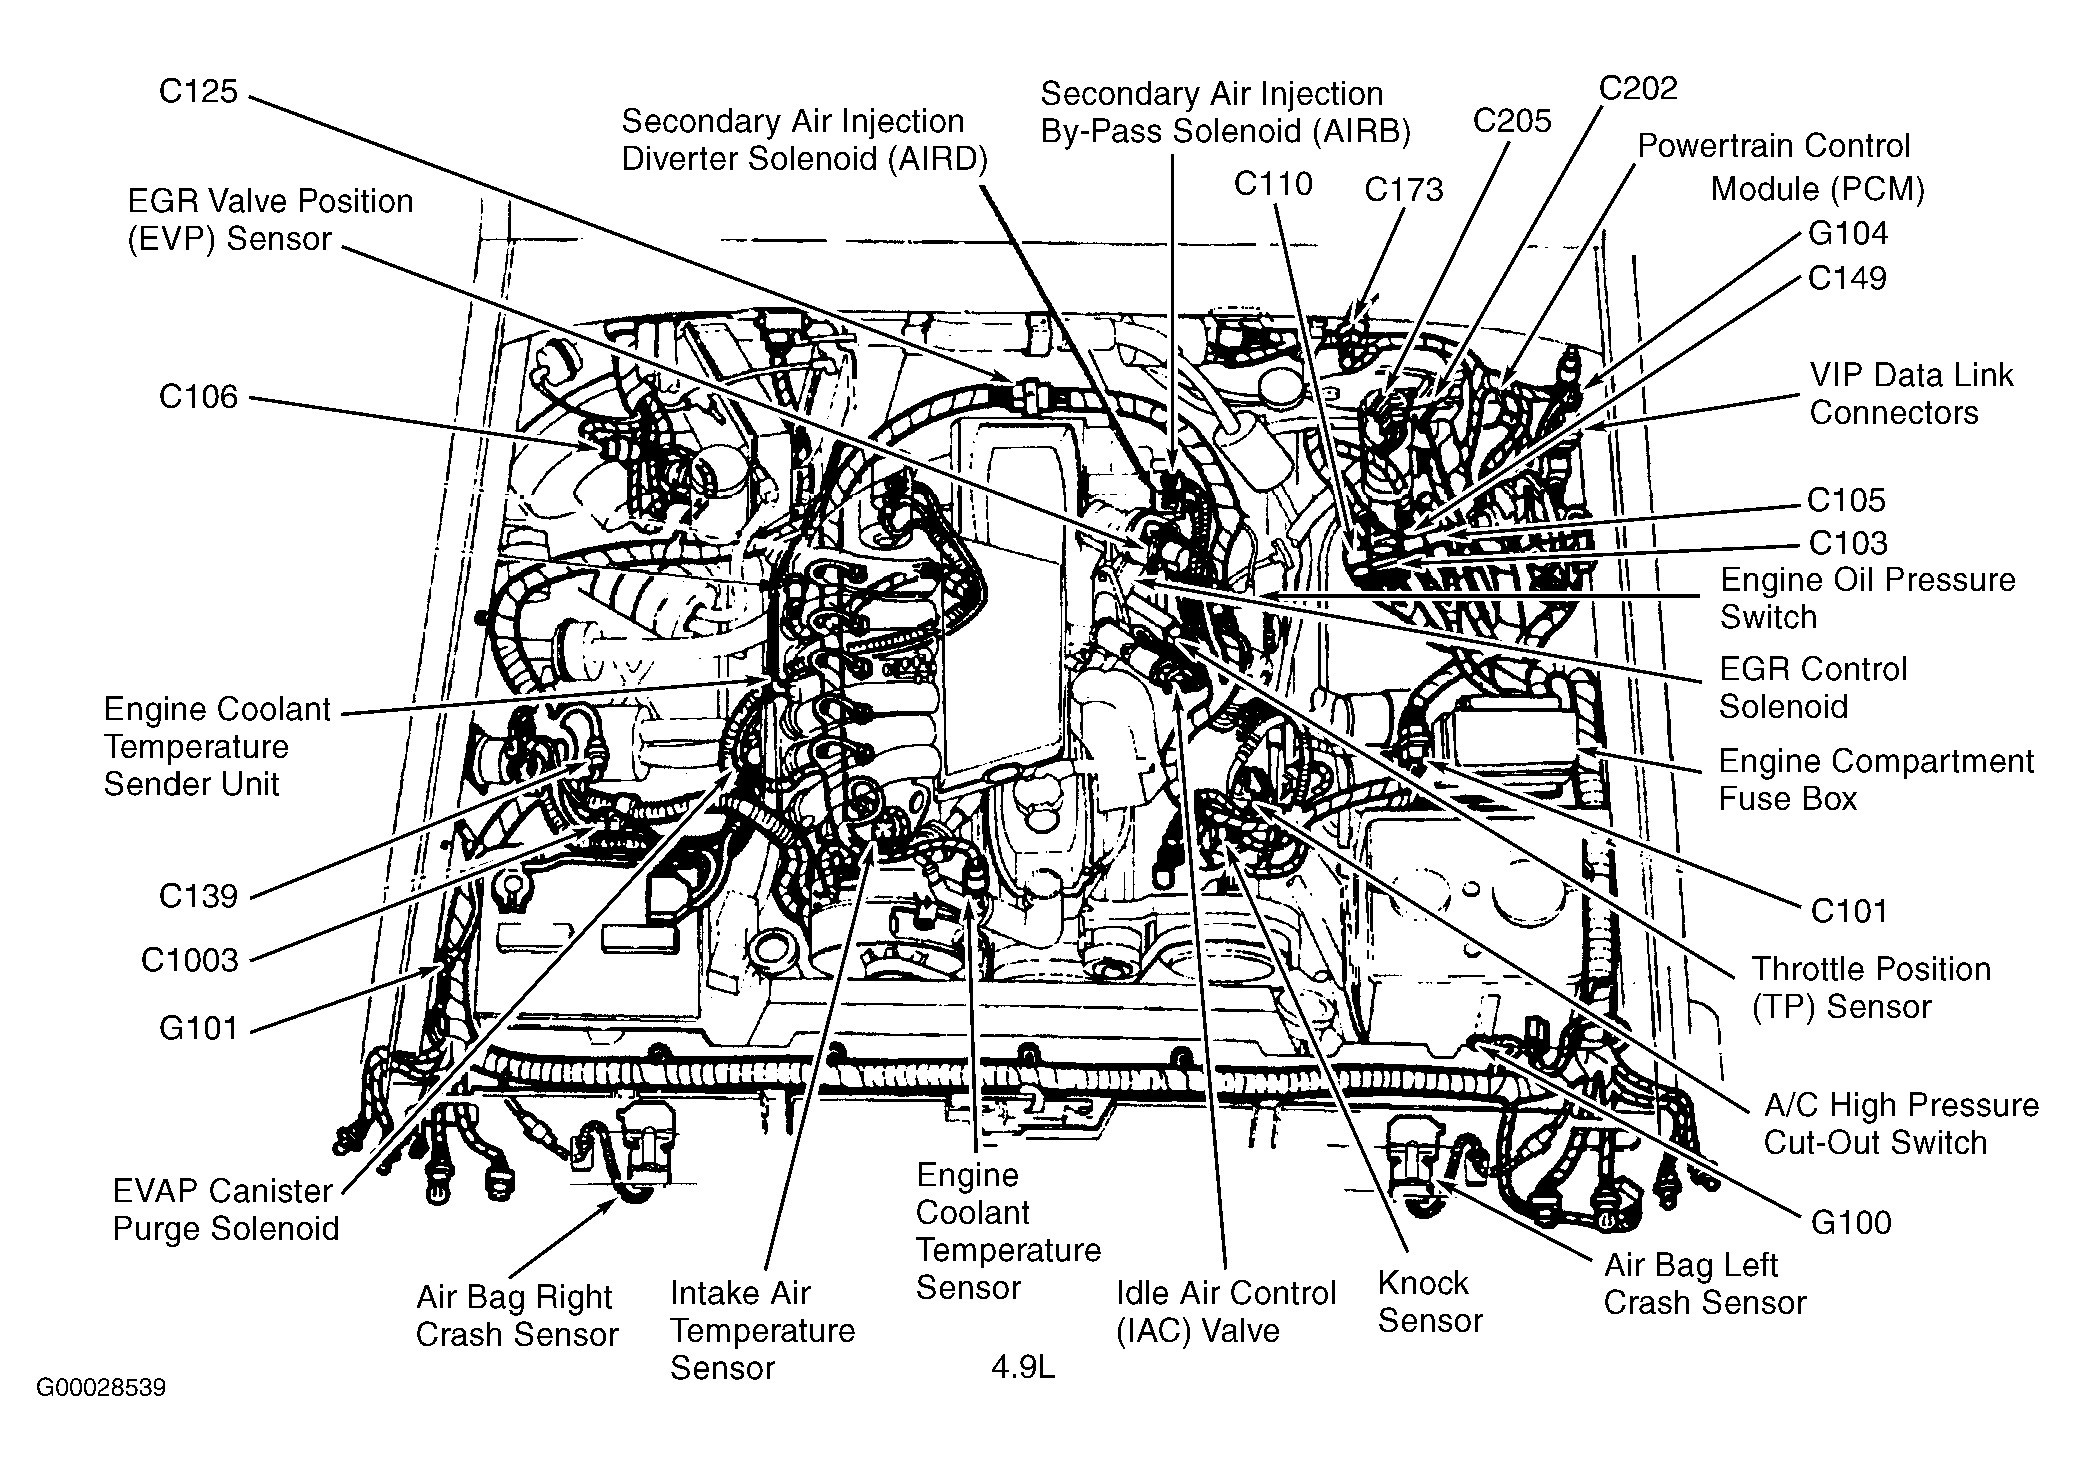 1995 Lexus Engine Diagram - Wiring DDiagrams Home way-analyst -  way-analyst.brixiaproart.it | 1998 Lexus Gs400 Engine Diagram |  | Brixia PRO Art